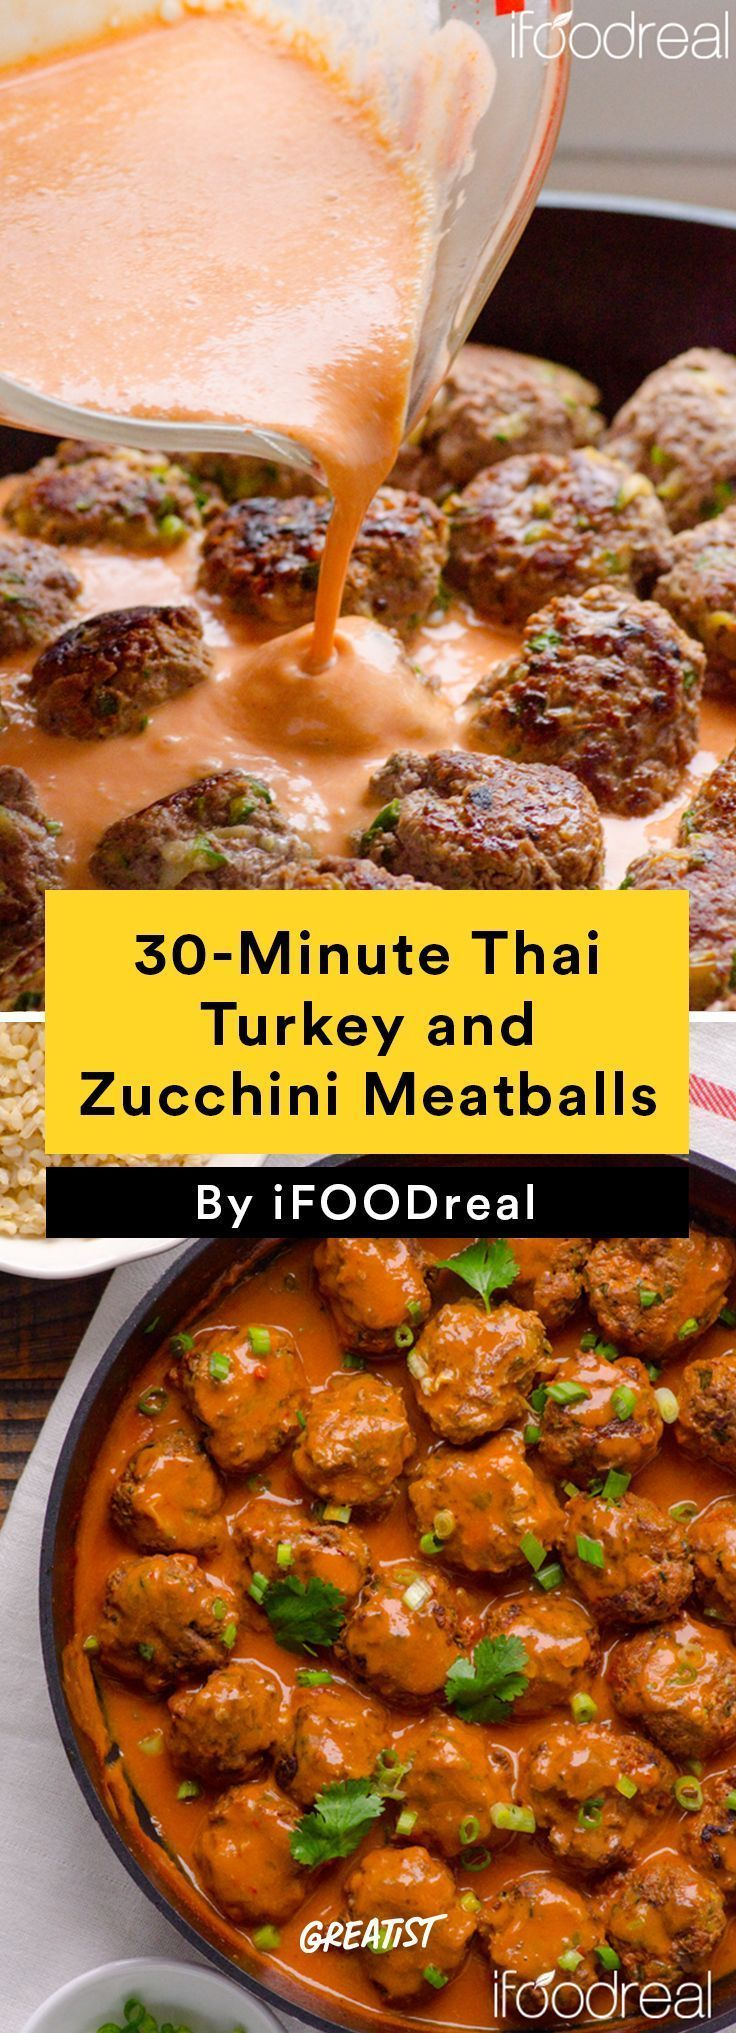 5. 30-Minute Thai Turkey and Zucchini Meatballs #healthy #dinner #recipes http://greatist.com/eat/clean-eating-ground-turkey-recipes